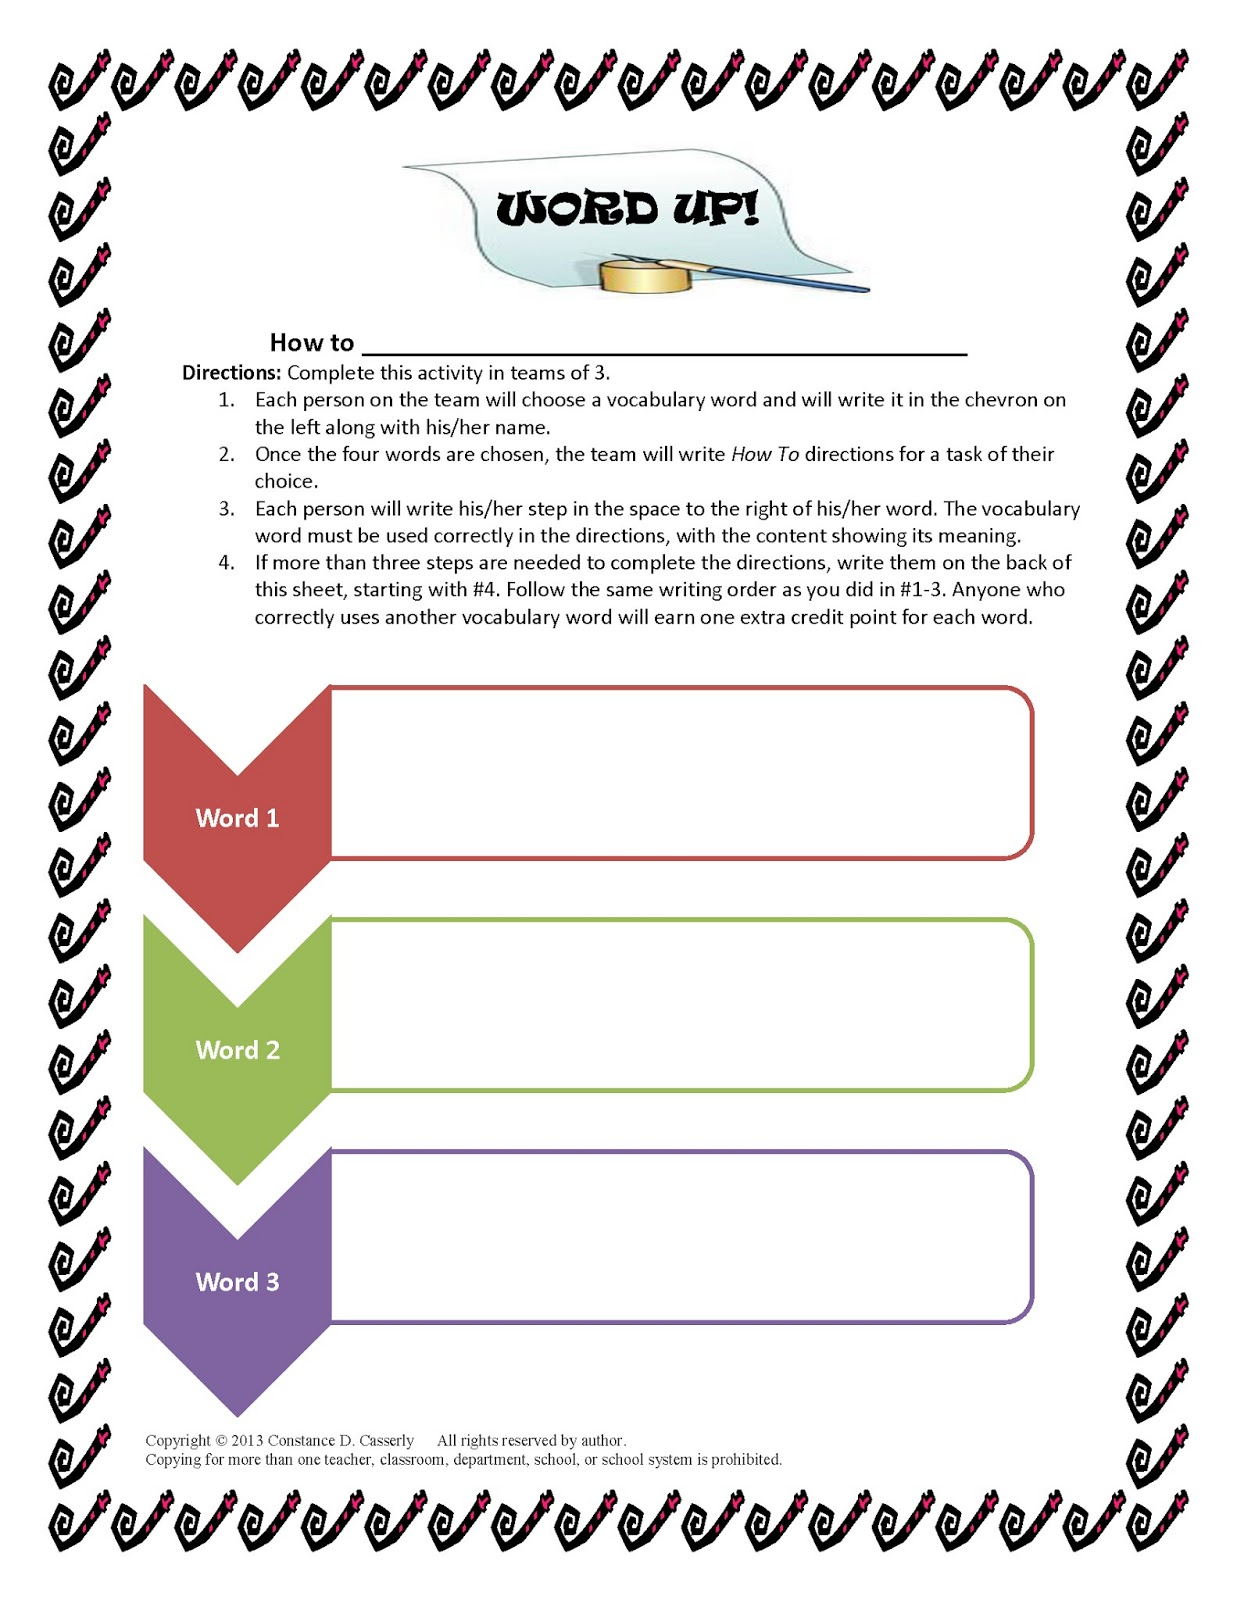 TEACH IT WRITE Word Up With the Power of Words – Middle School Vocabulary Worksheets